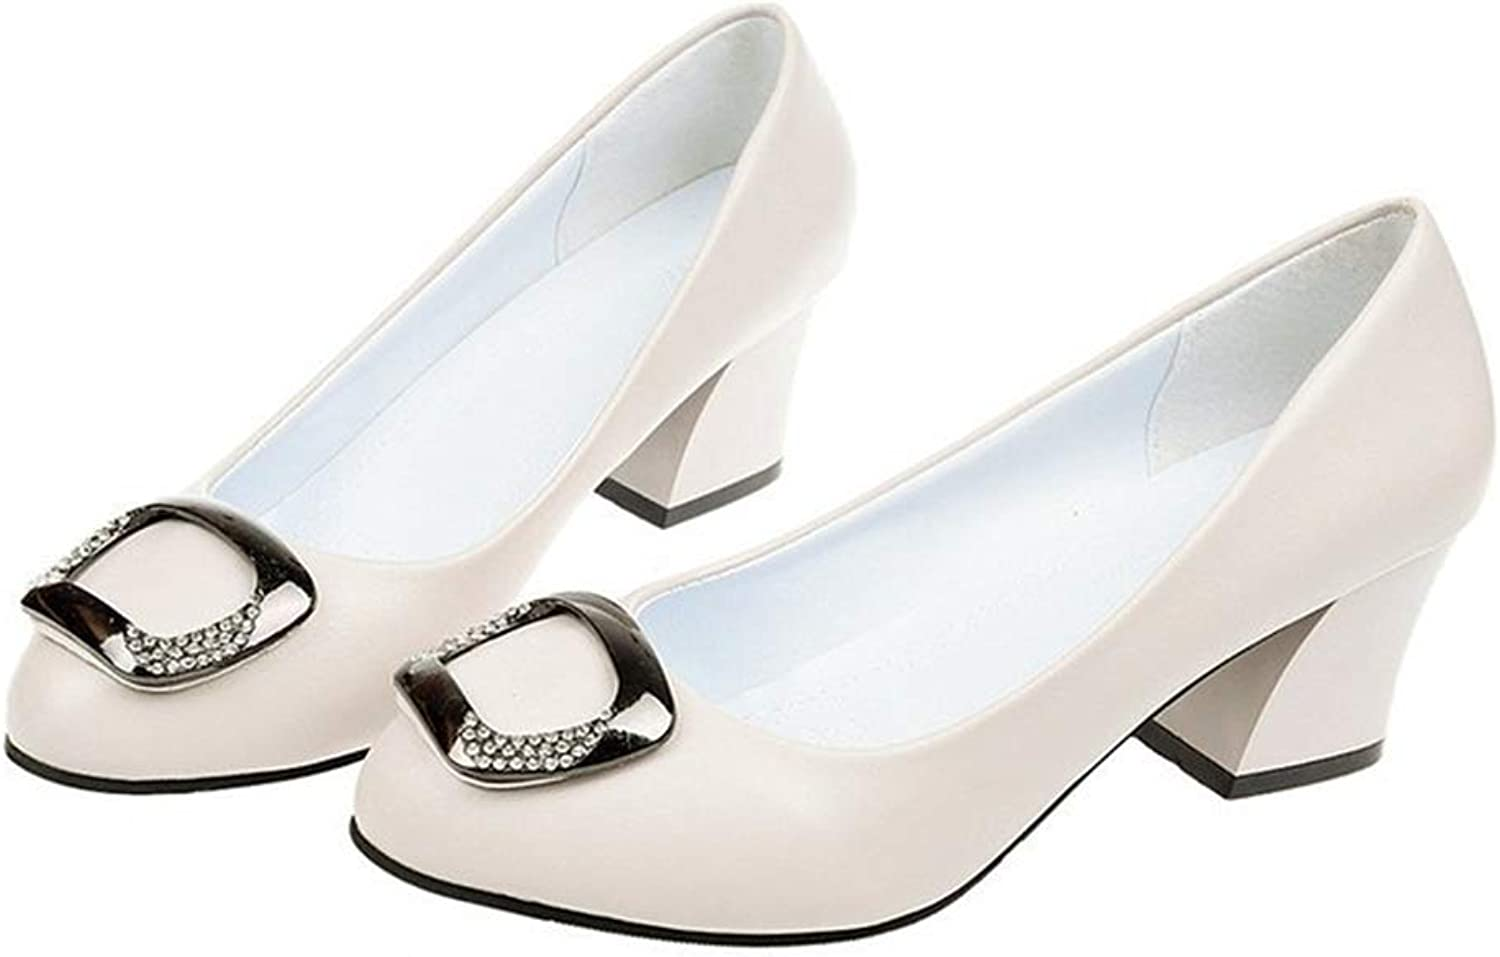 MIKA HOM Women's Low Heel Pumps Pointed Toe Slip On Dress Party Office Pumps Thick Heel